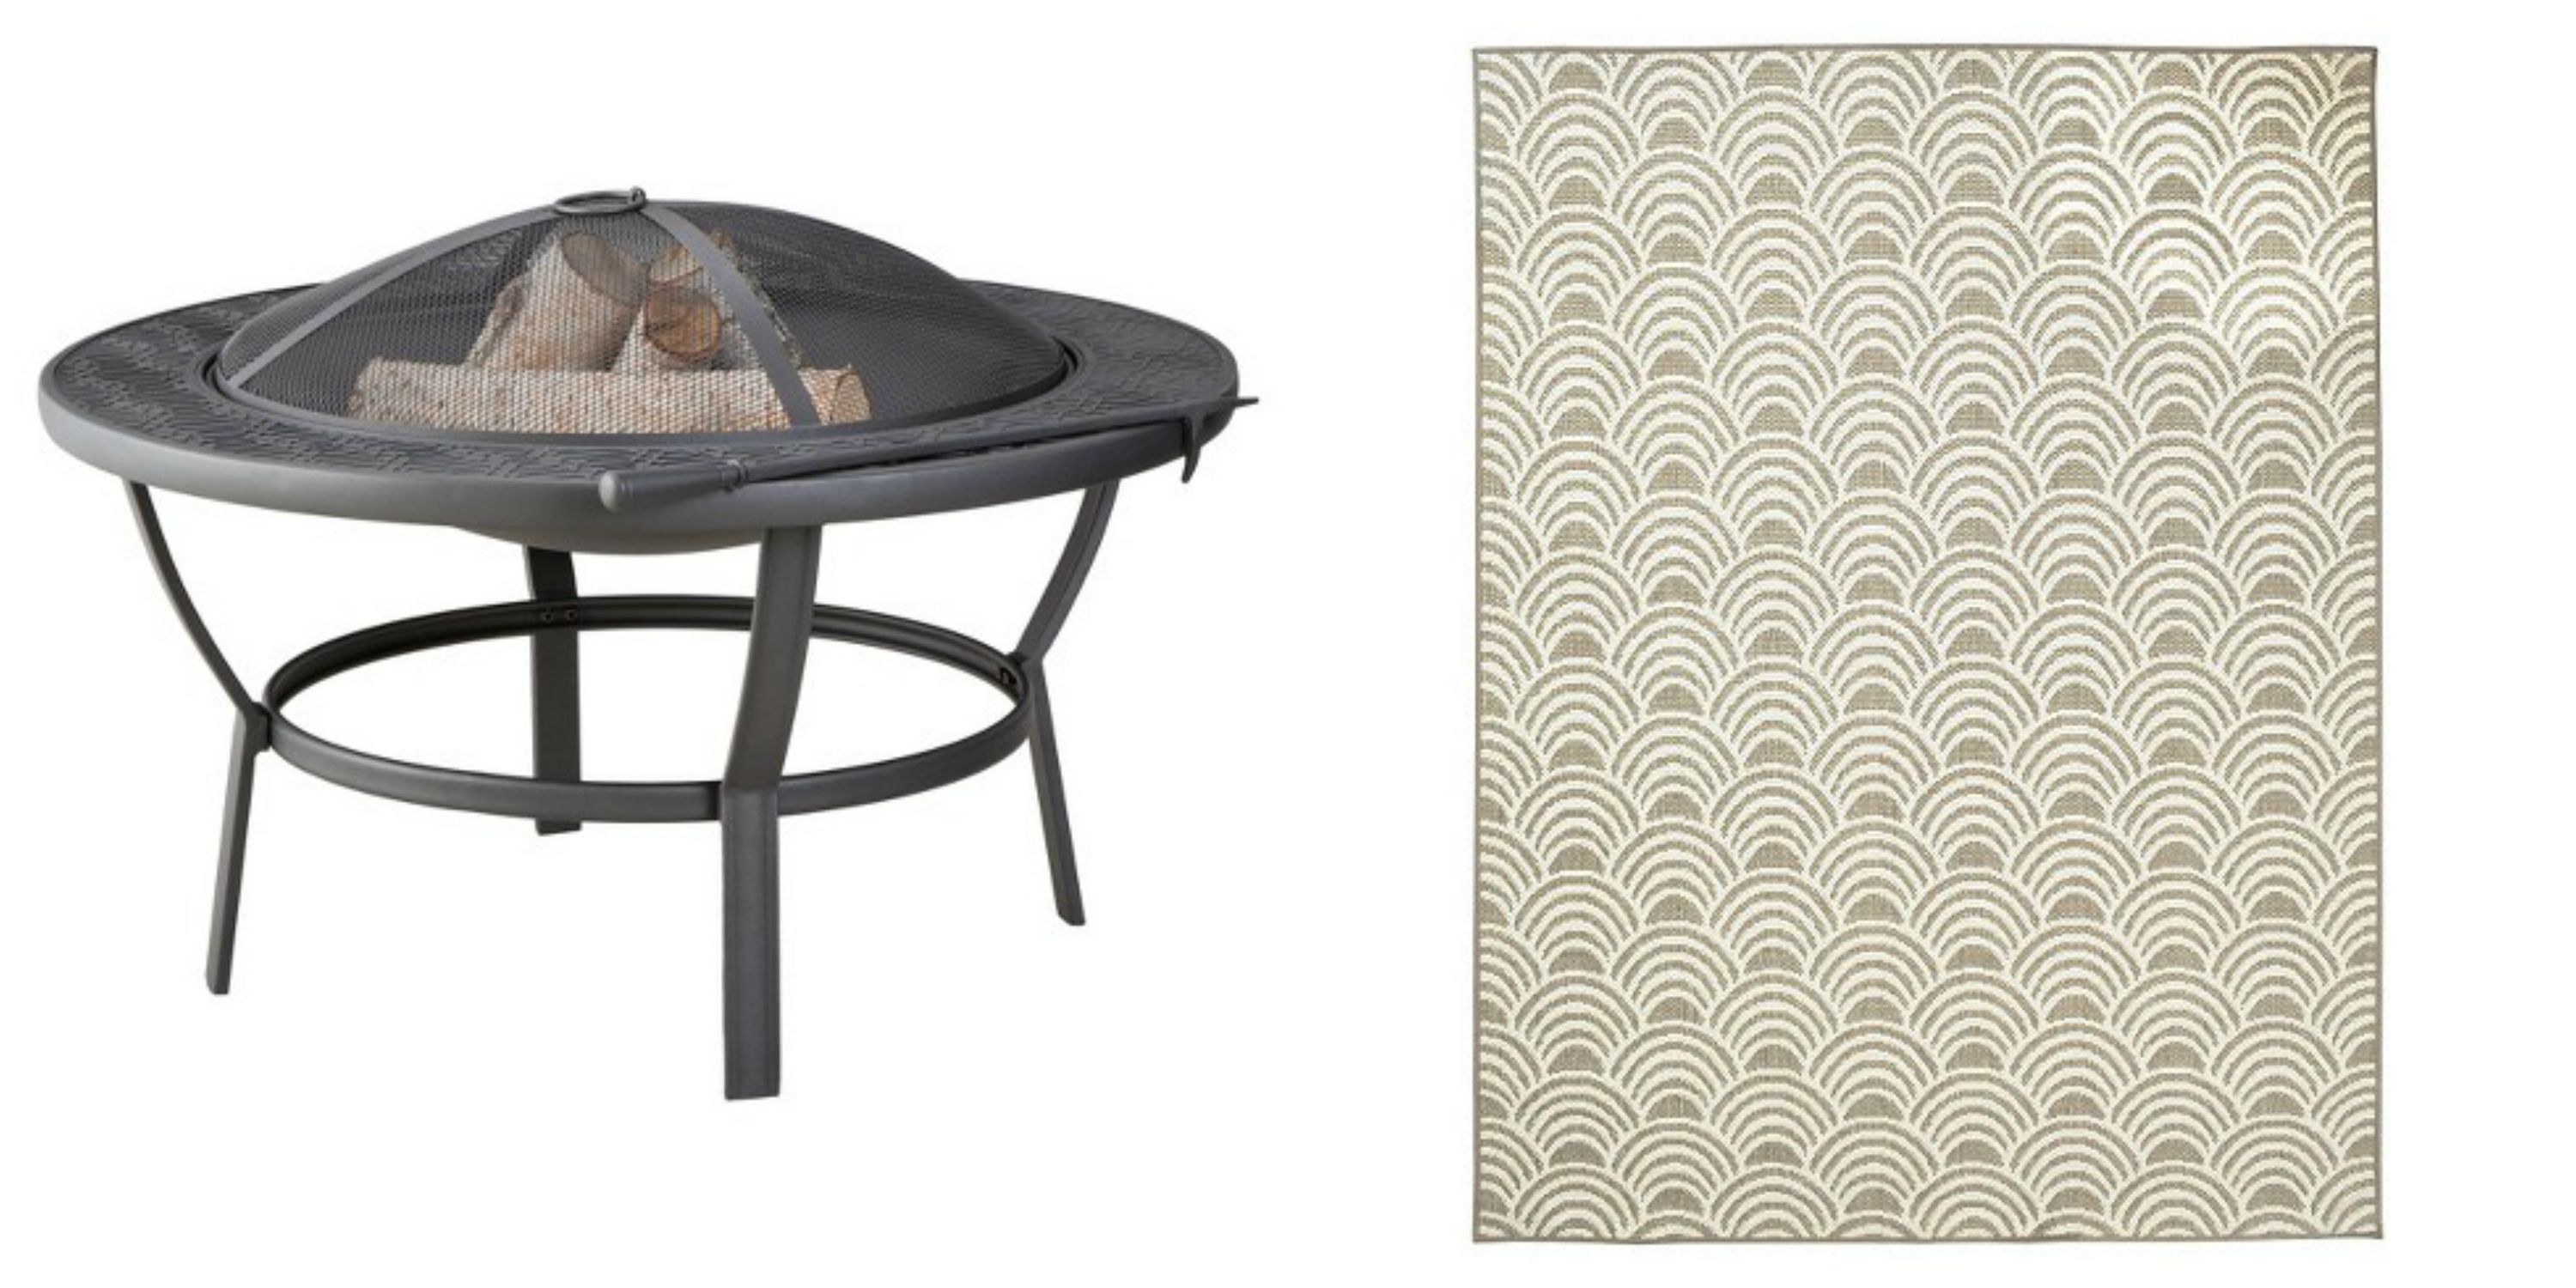 Target Up To 40 Off Patio Furniture Clearance - Outdoor Furniture Clearance At Target